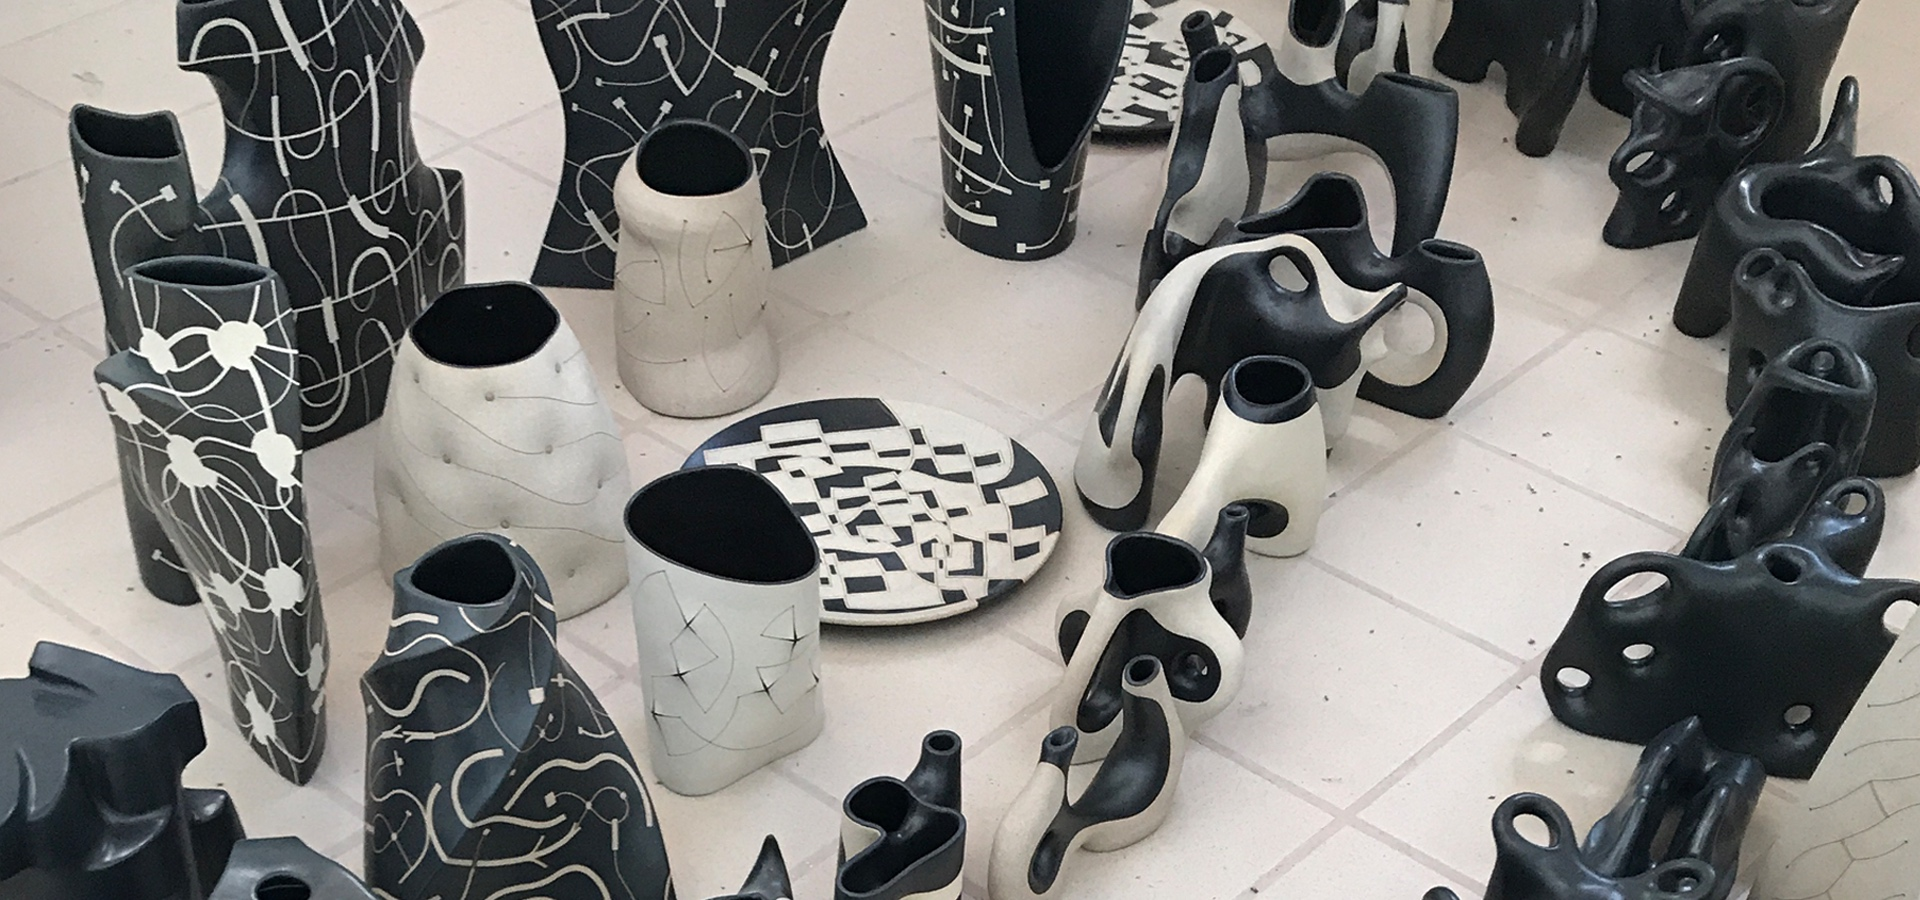 Black and white ceramics laid on the floor as seen from above